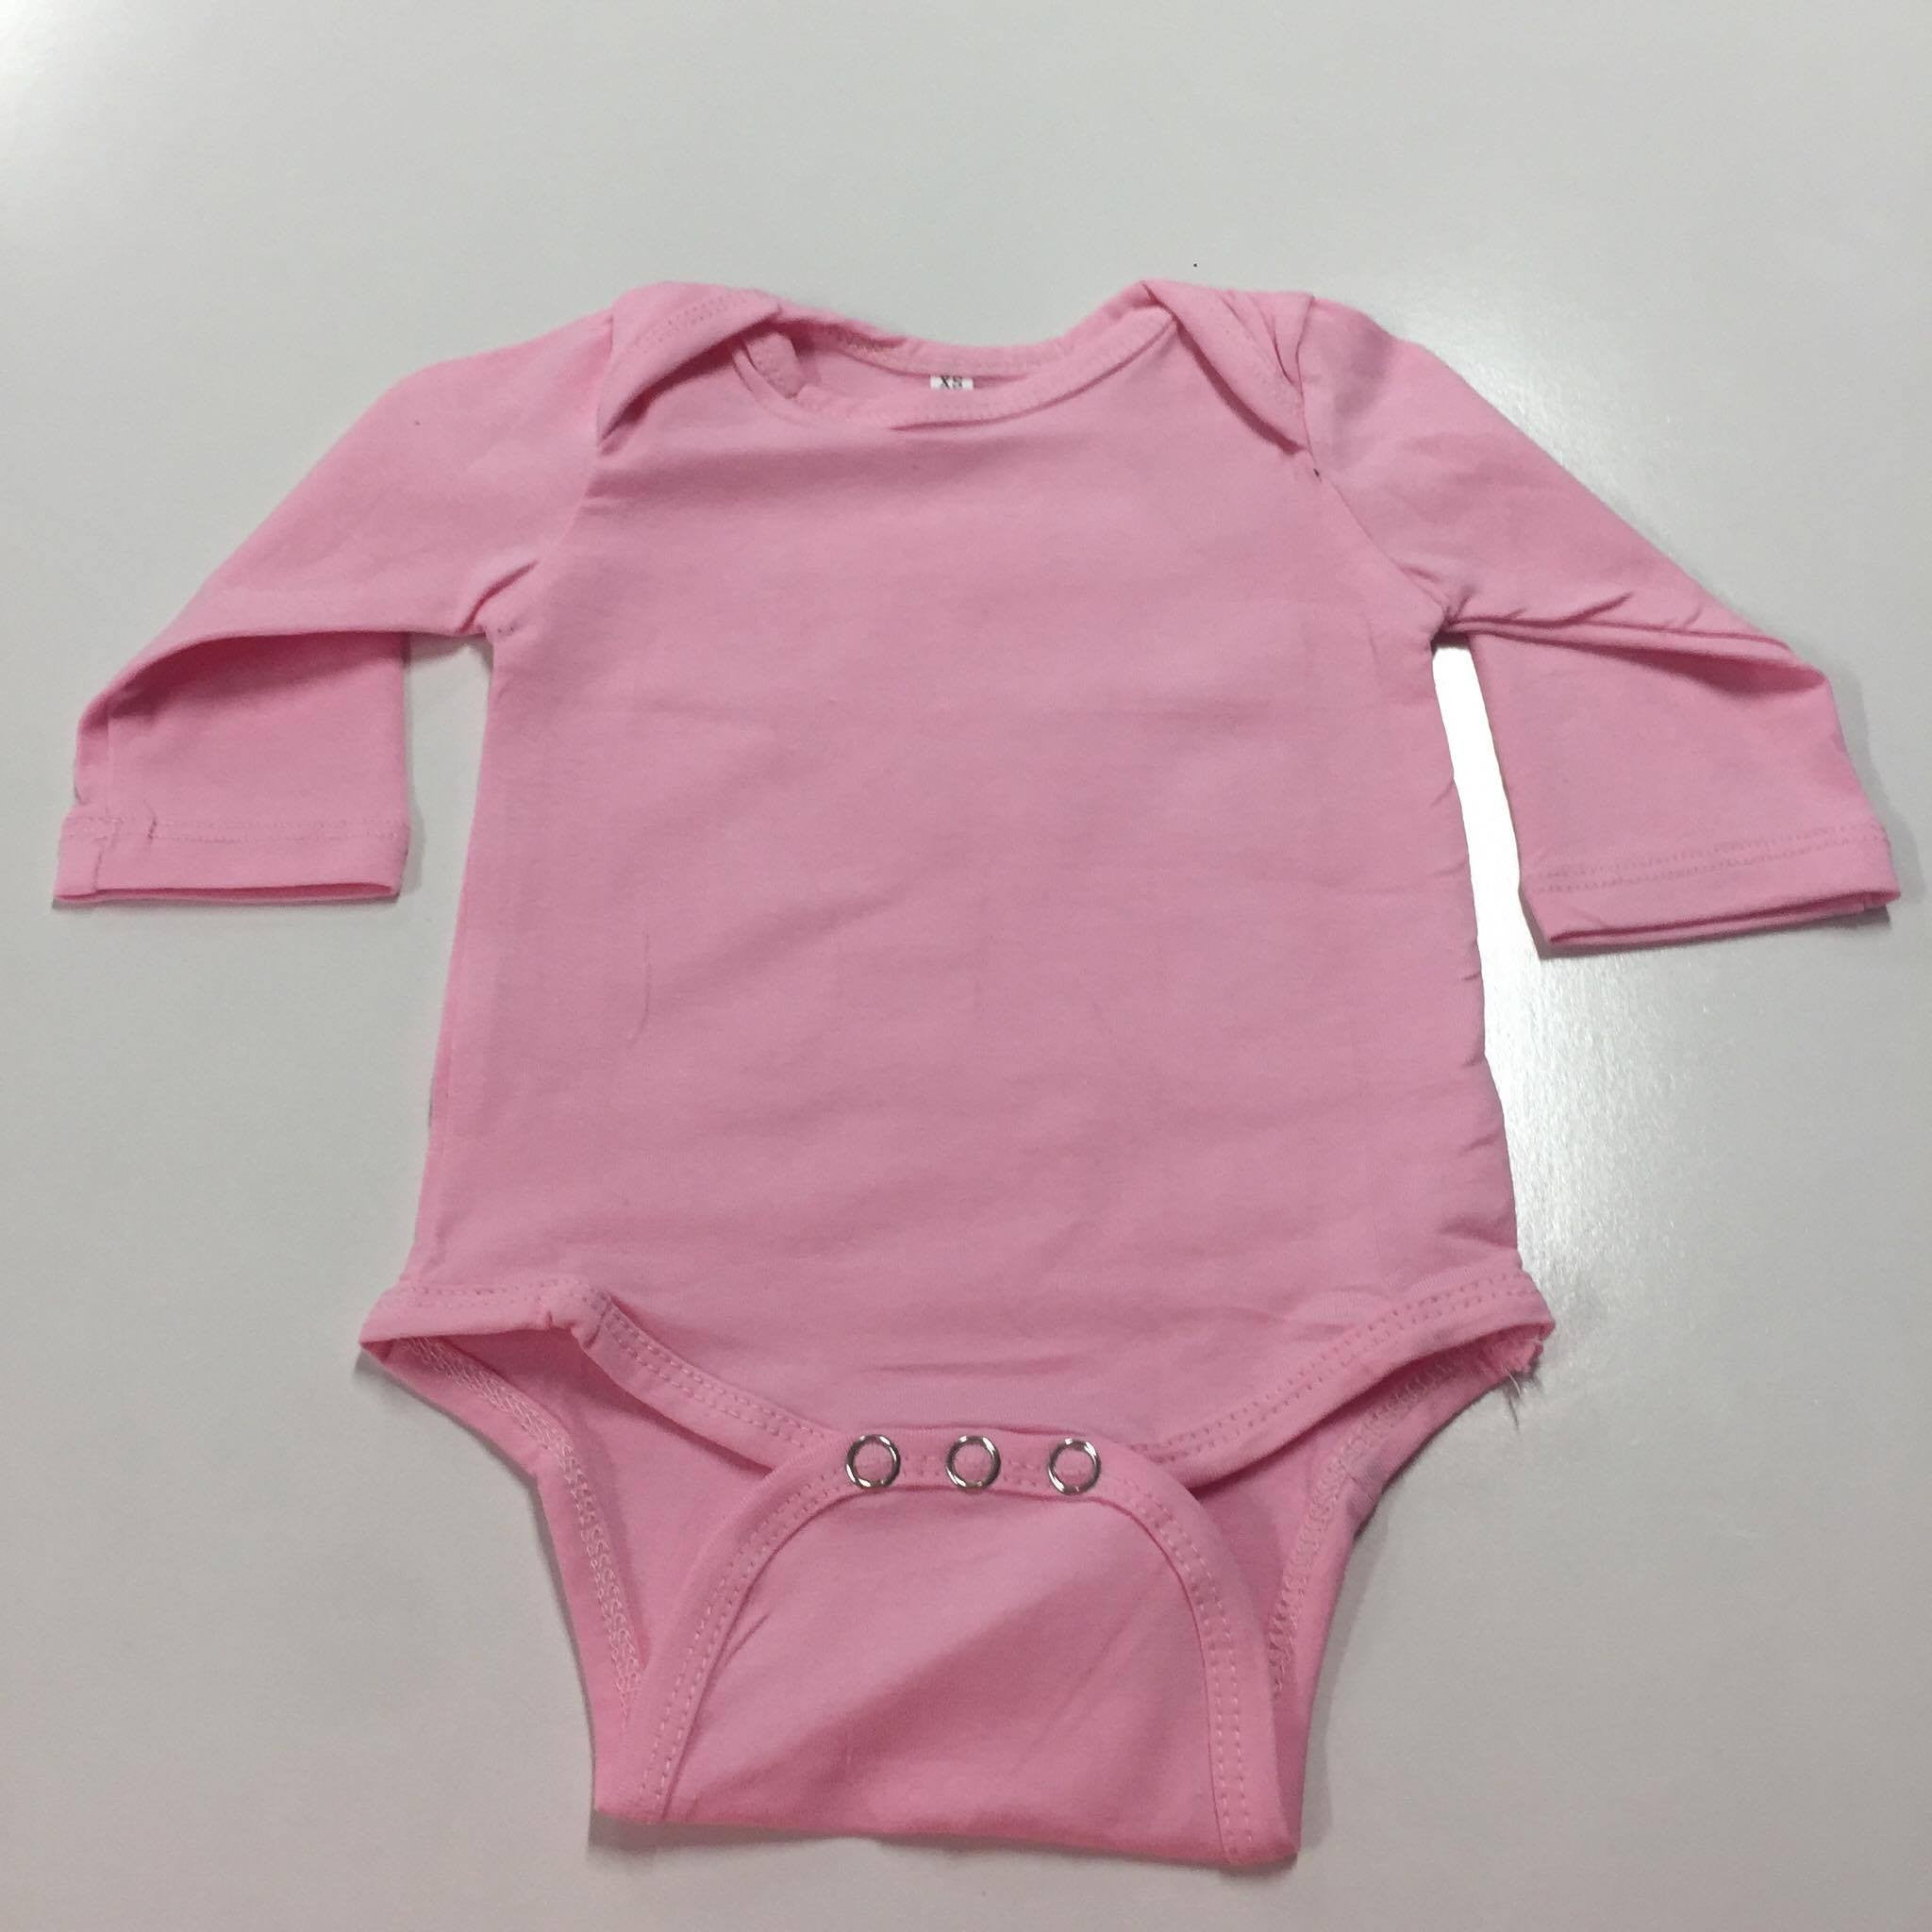 Cotton Spandex Bodysuit - Long Sleeve Light Colours